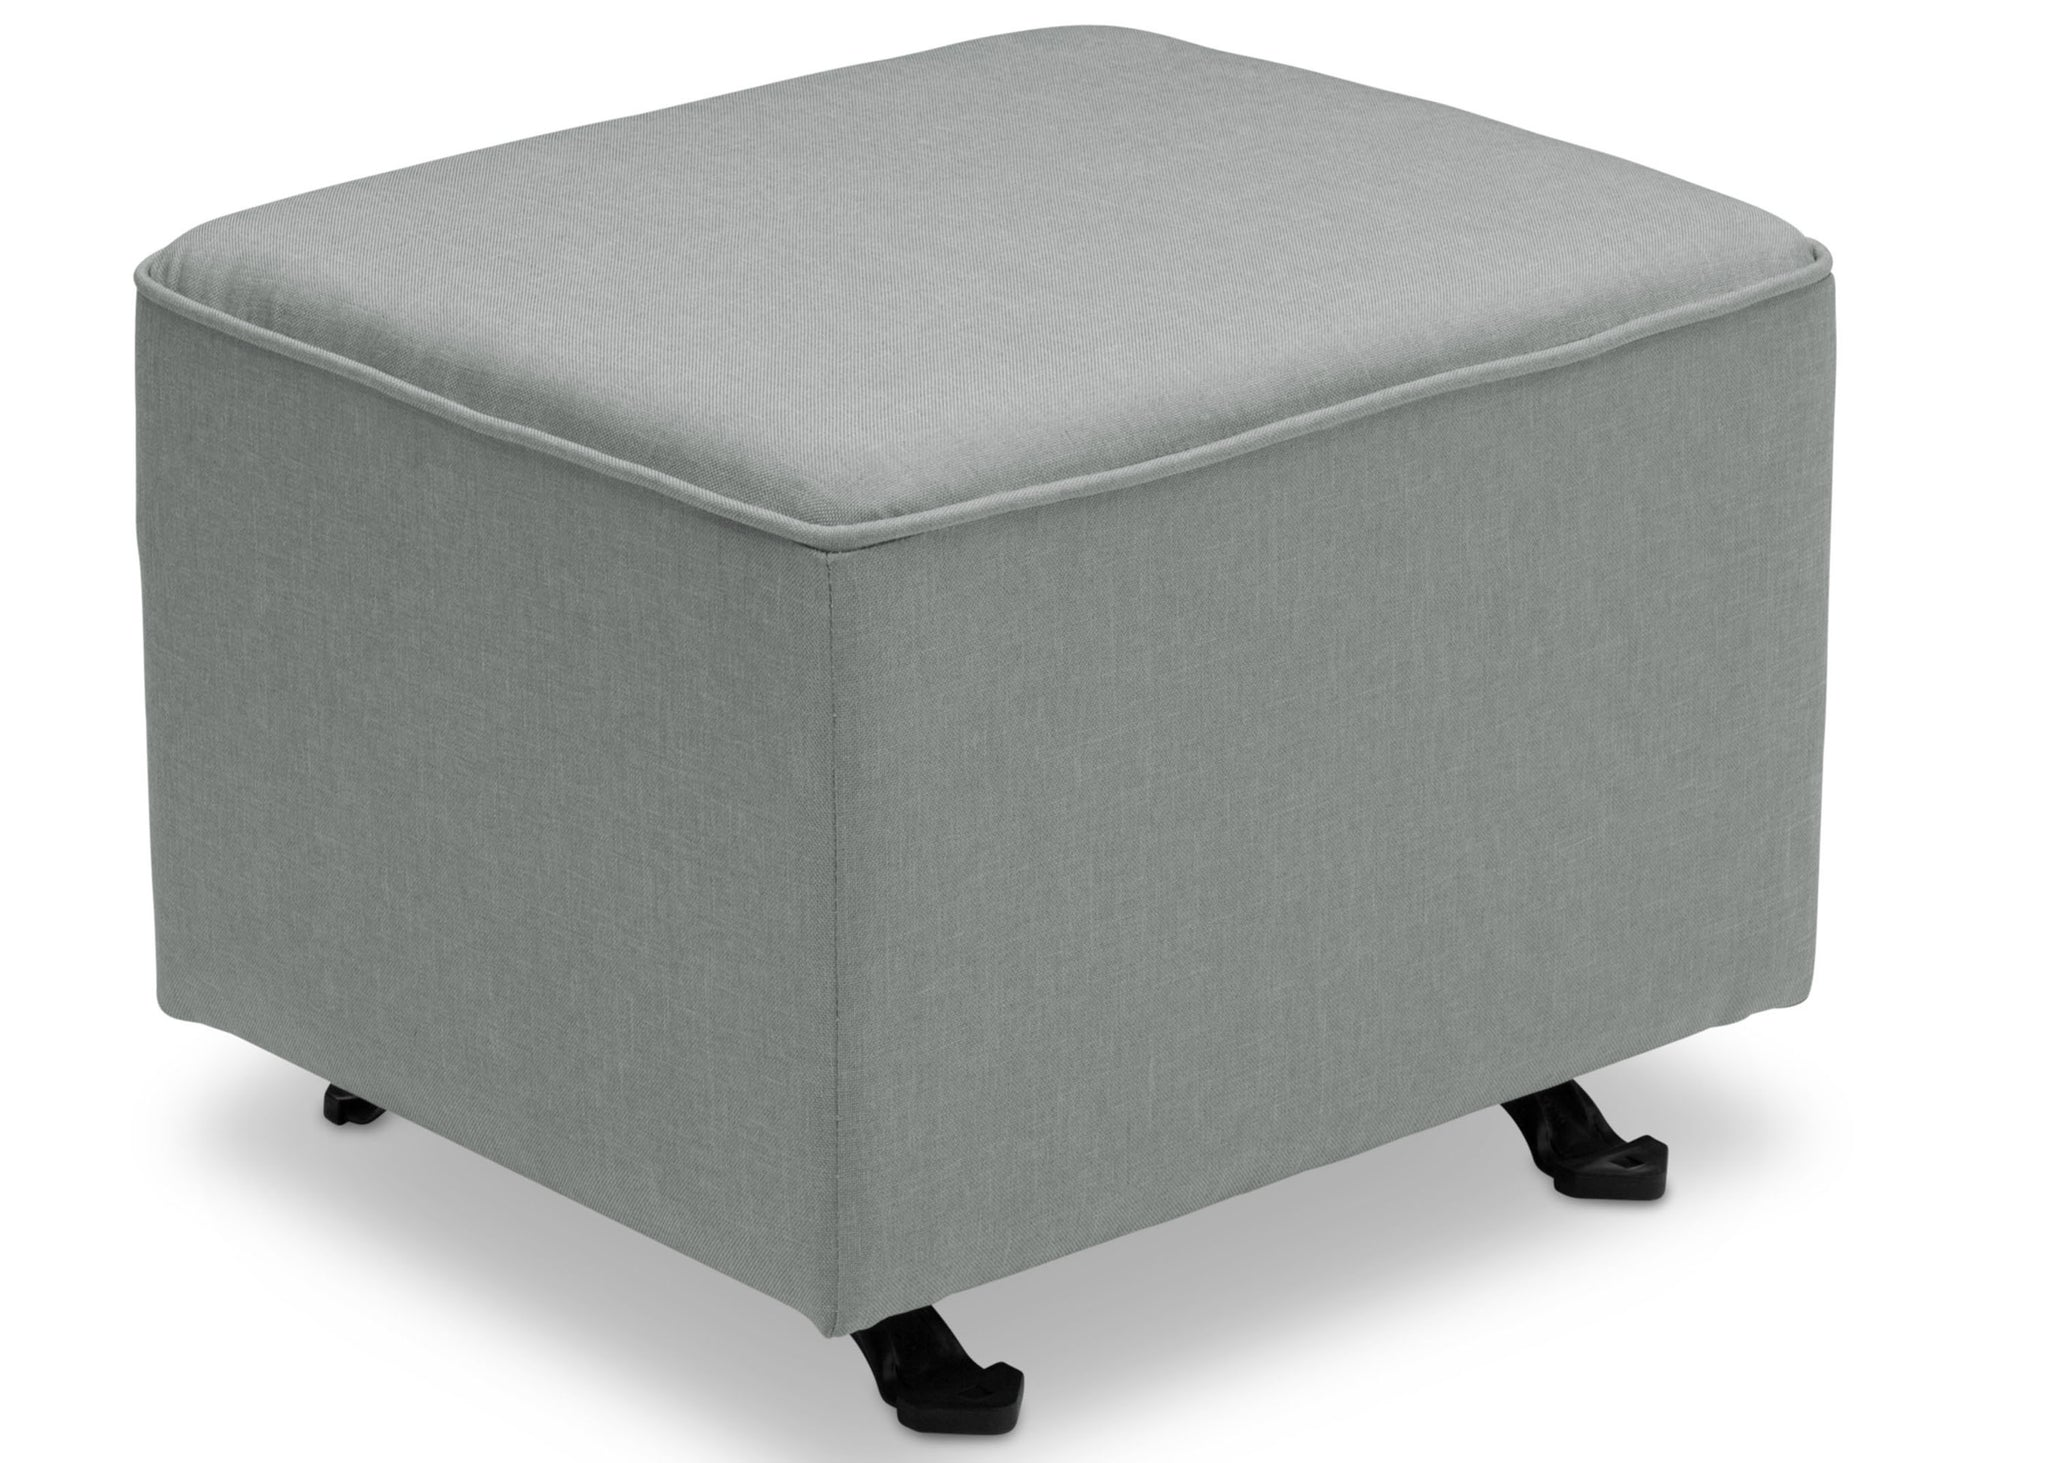 Delta Children Sea Breeze (465) Non Tufted Ottoman (501320), Right Silo c3c